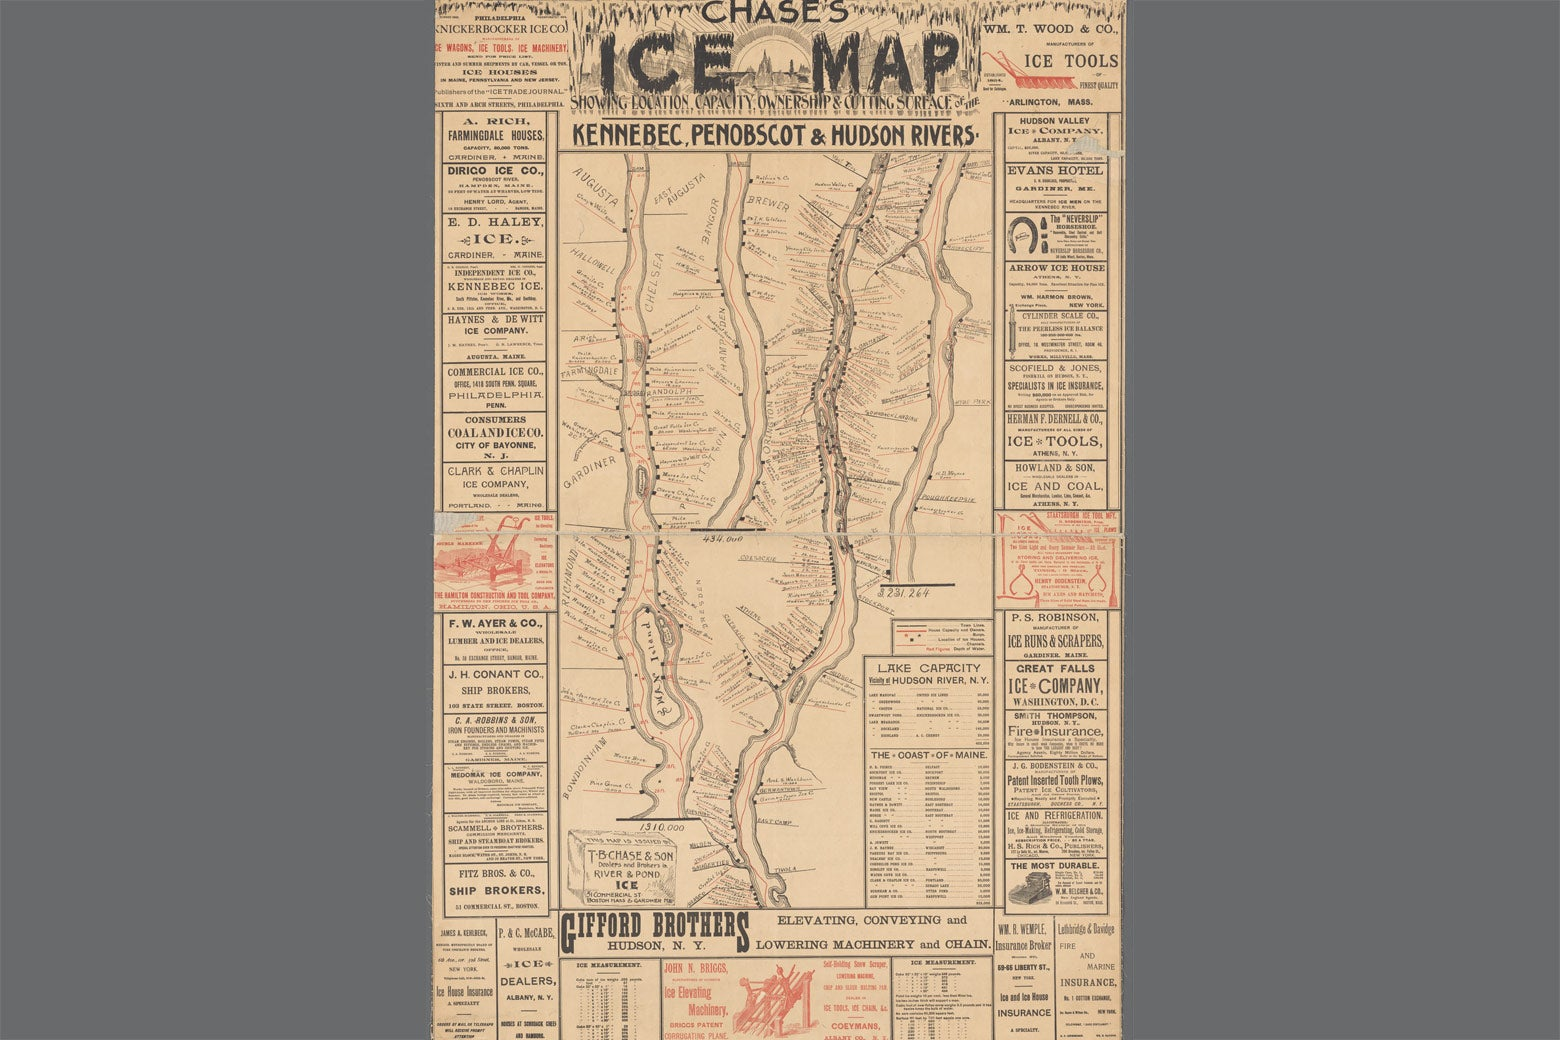 """Chase's ice map, showing location, capacity, ownership & cutting surface of the Kennebec, Penobscot & Hudson rivers."" T.B. Chase & Son, 1894.  New York Public Library Digital Collections"